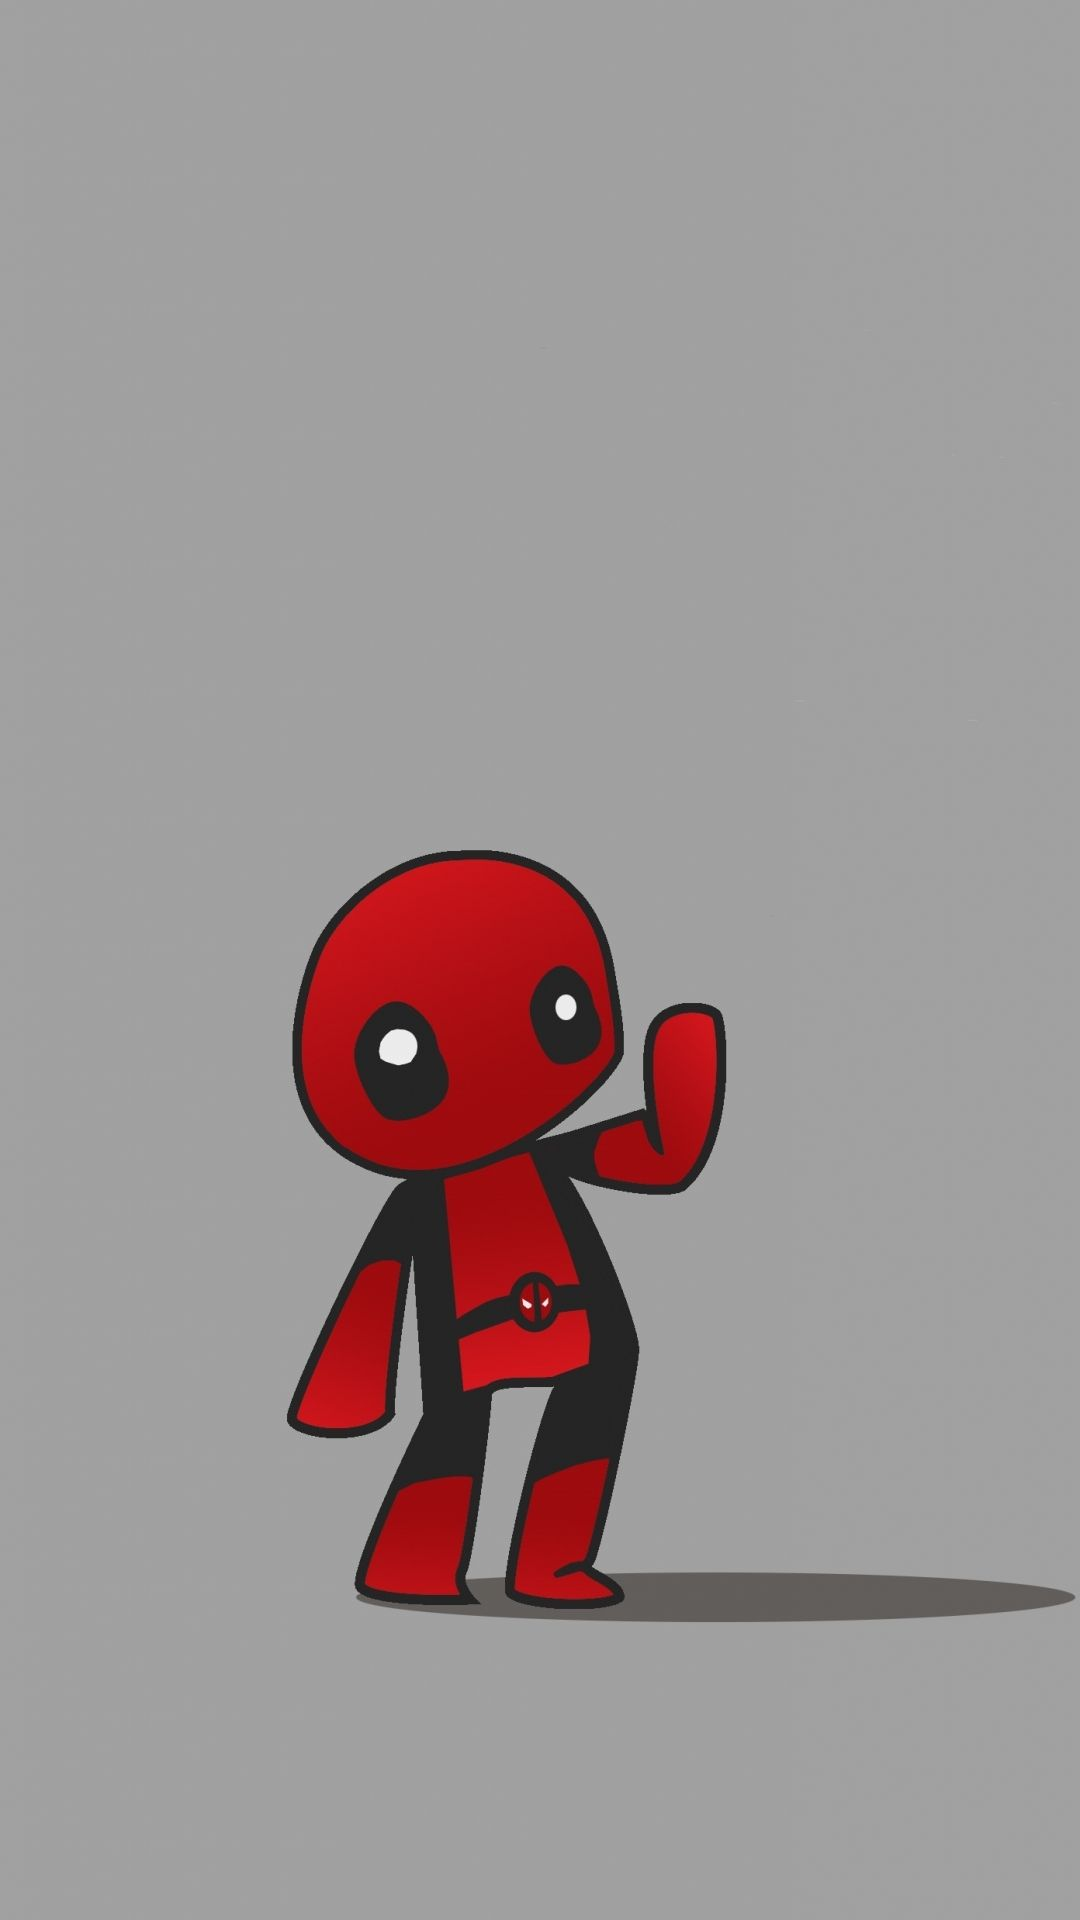 1080x1920 59 Deadpool Apple/iPhone 7 Plus (1080x1920) Wallpapers - Mobile Abyss